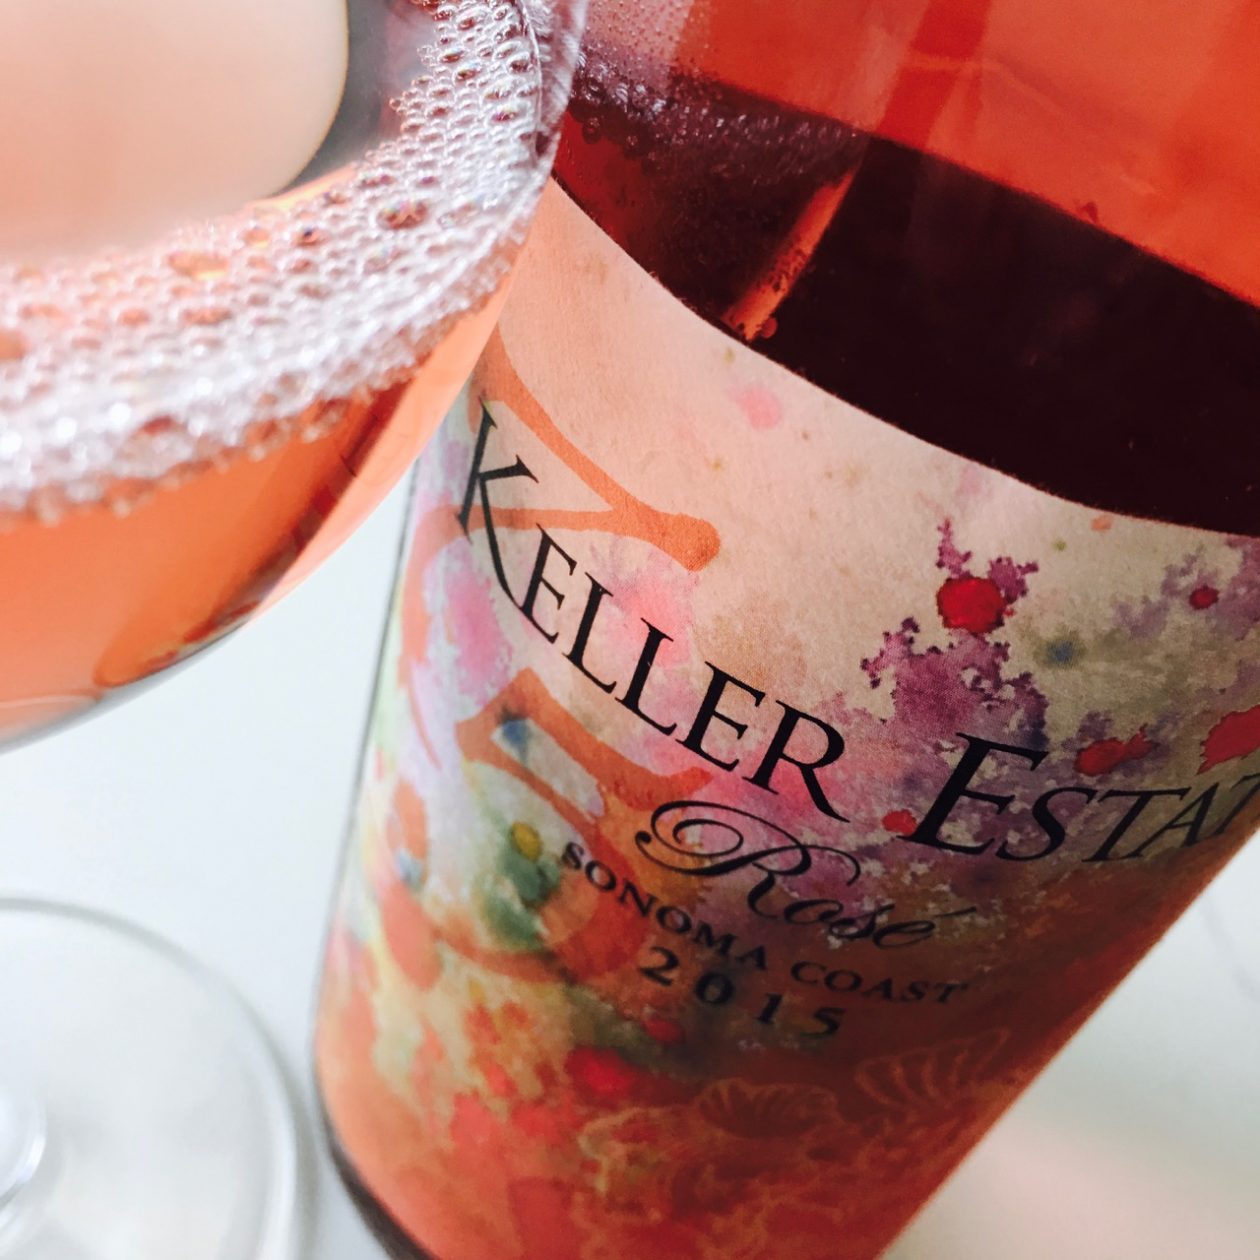 2015 Keller Estate Rosé Sonoma Coast, Sonoma County